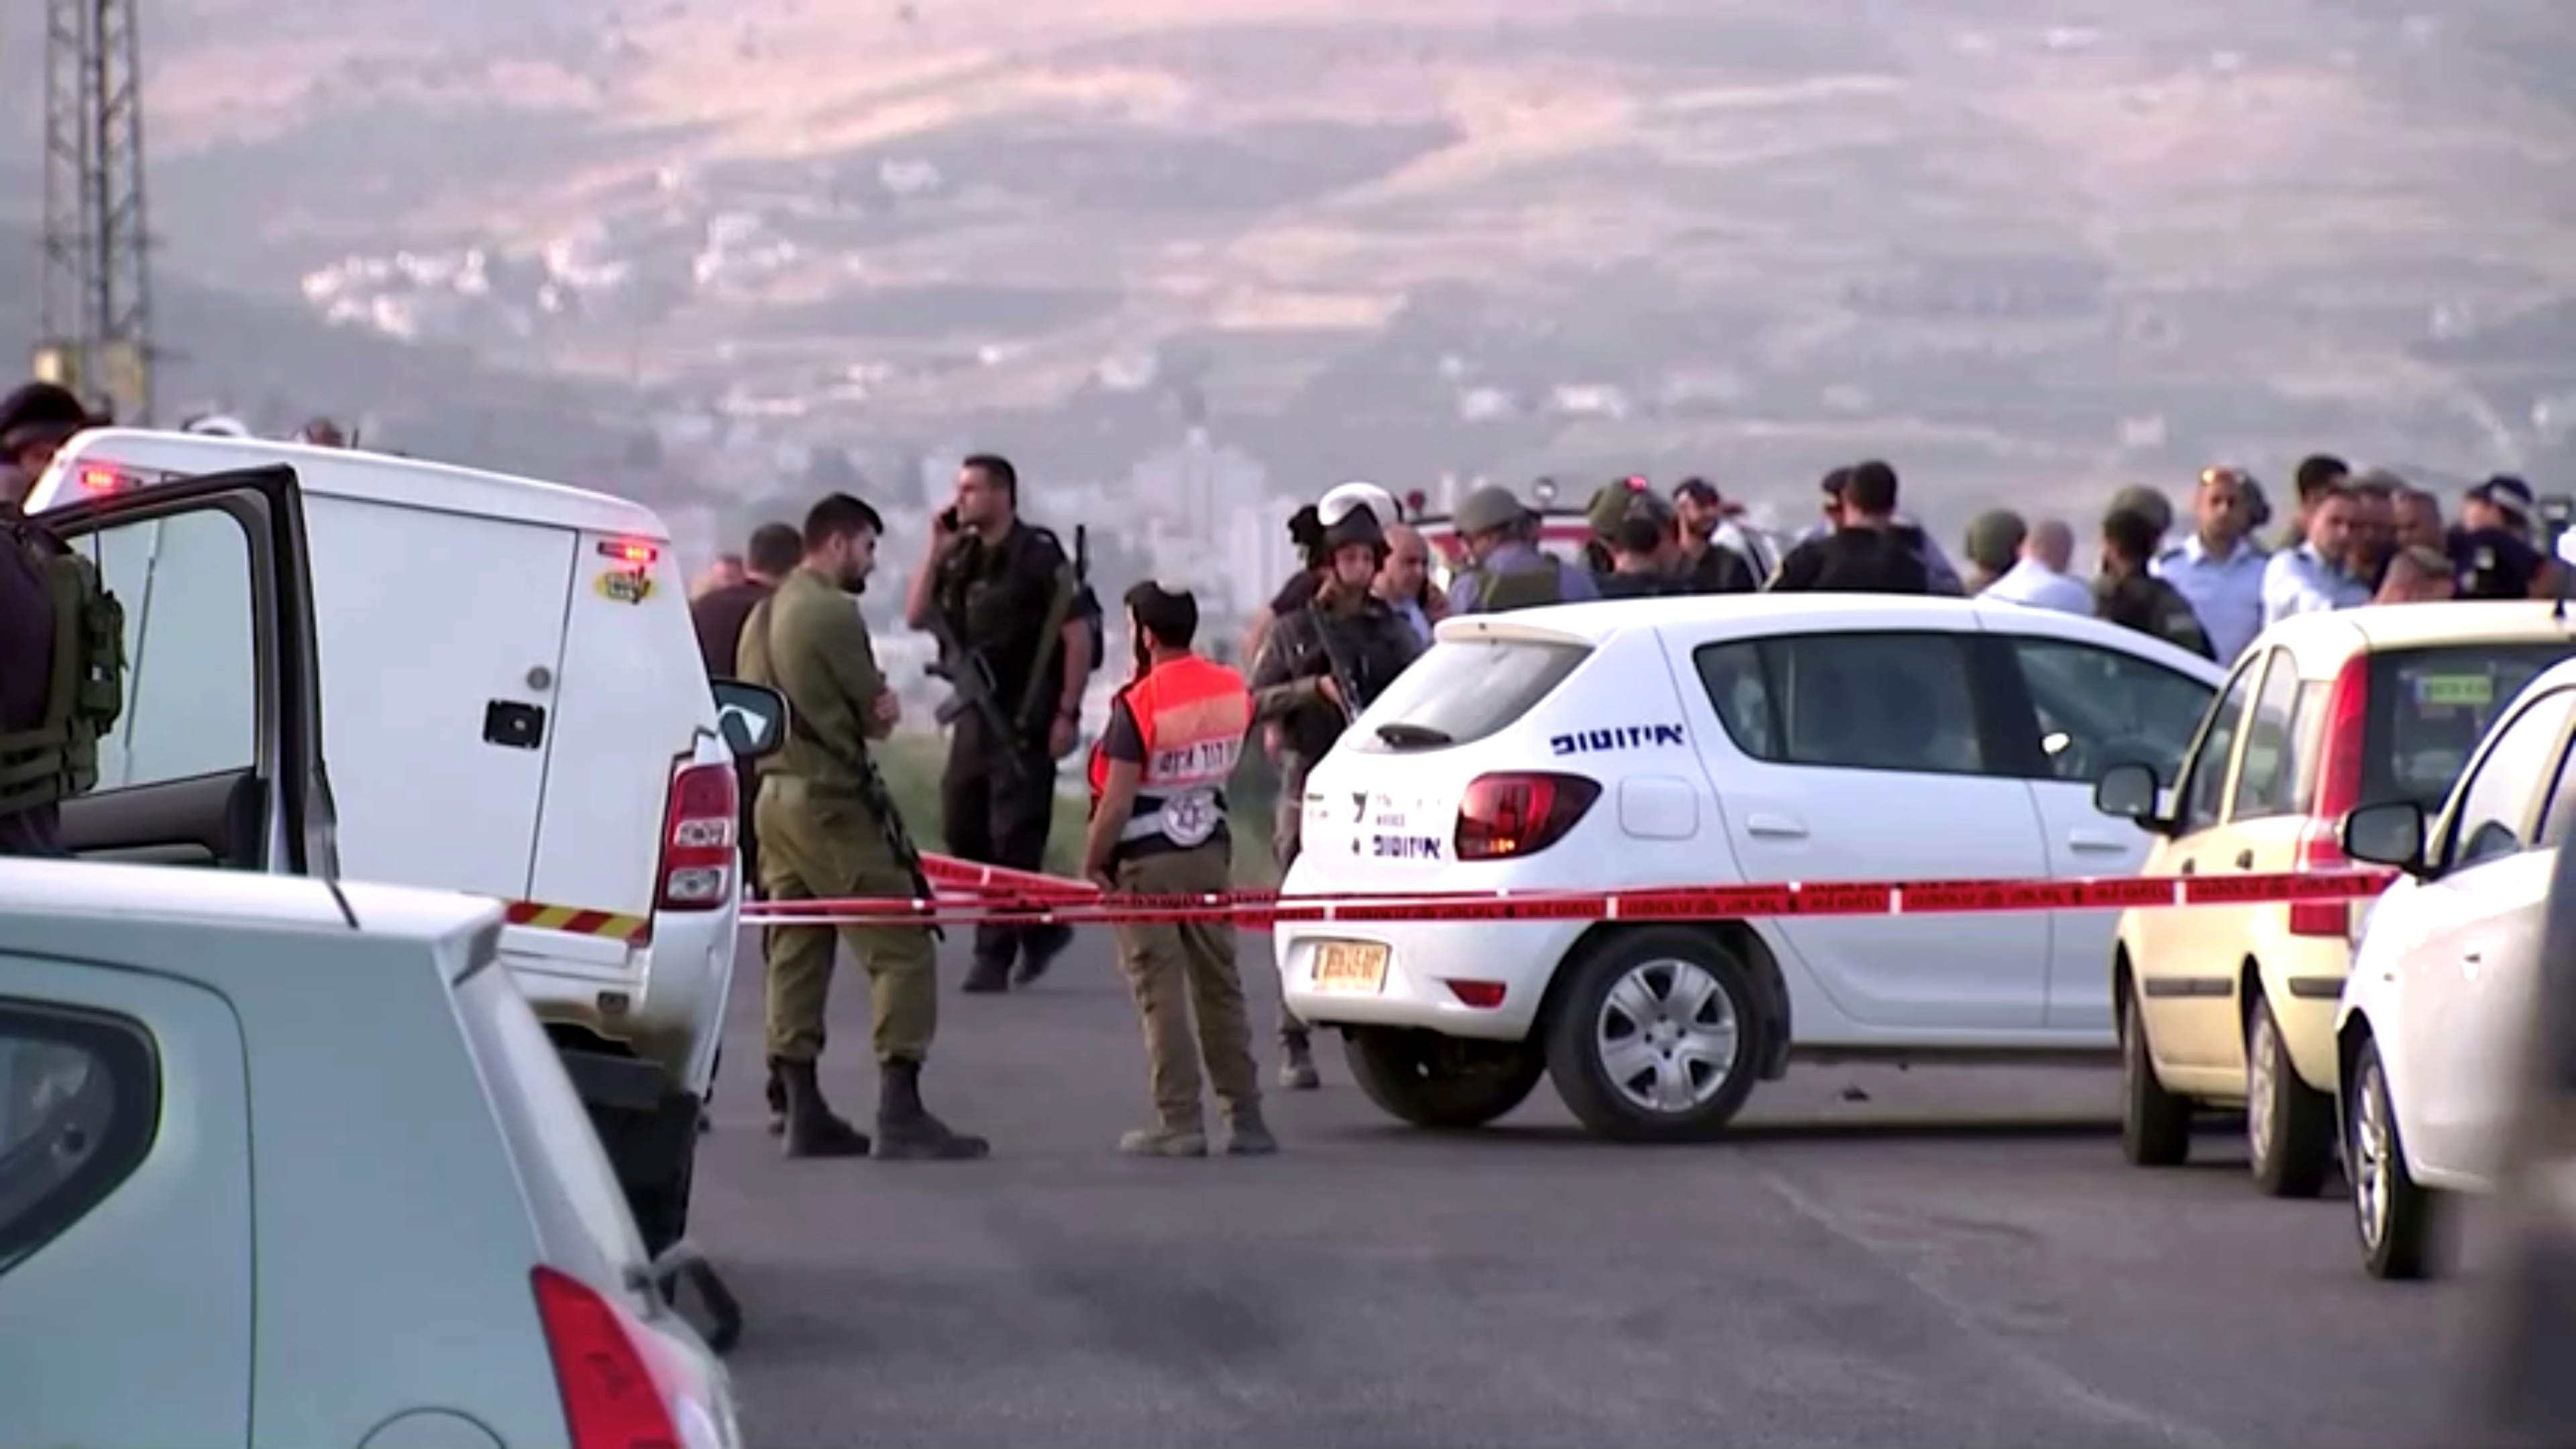 Members of Israeli forces gather at the scene of a shooting incident in the Israeli-occupied West Bank May 2, 2021, in this still image taken from a video. REUTERS/REUTERS TV